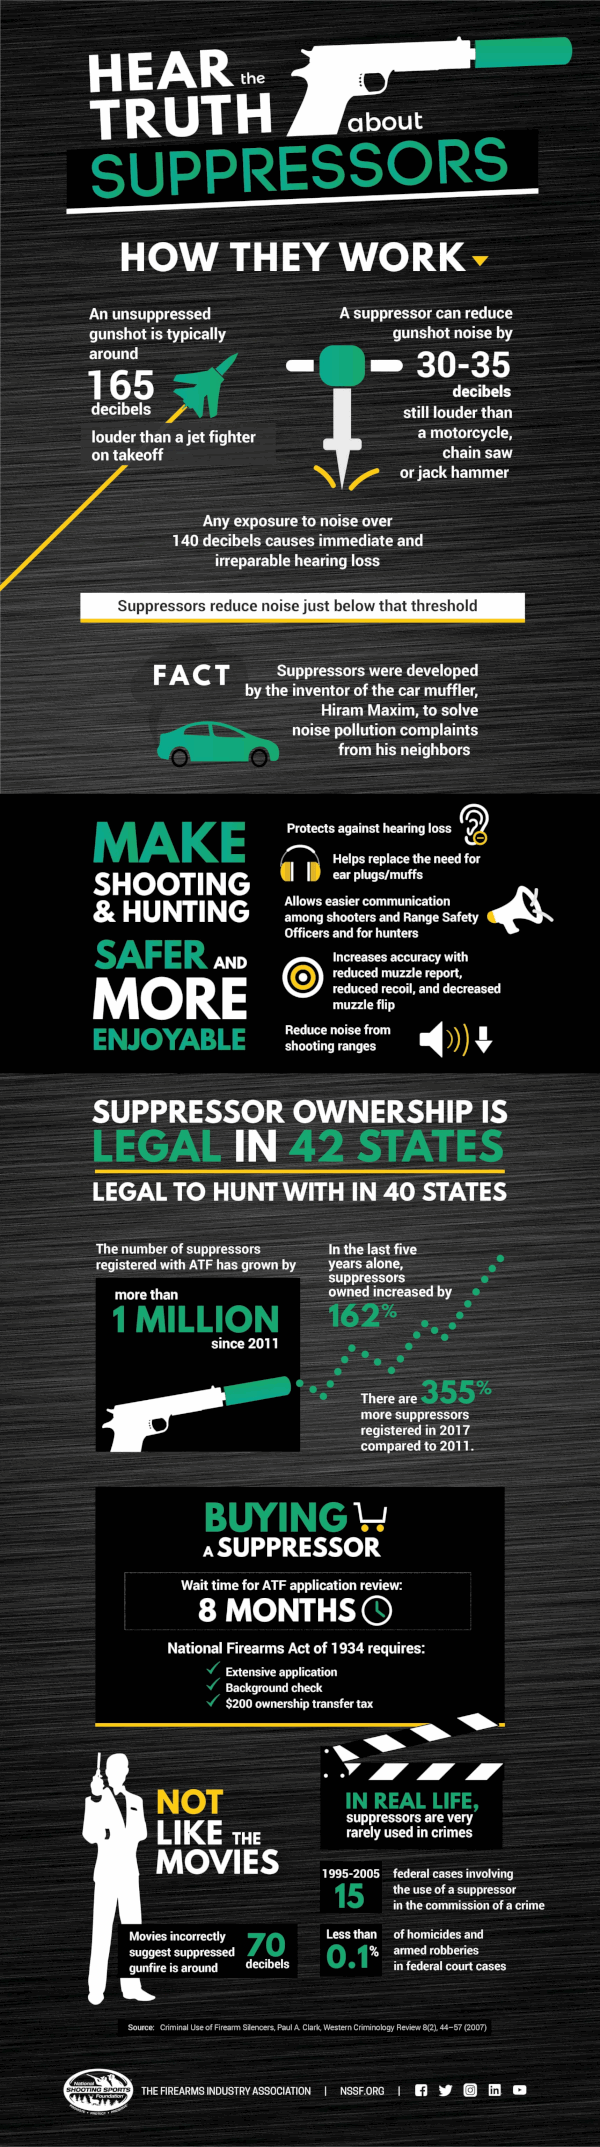 Suppressor silencer NSSF infographic decibel noise reduction moderator fact sheet